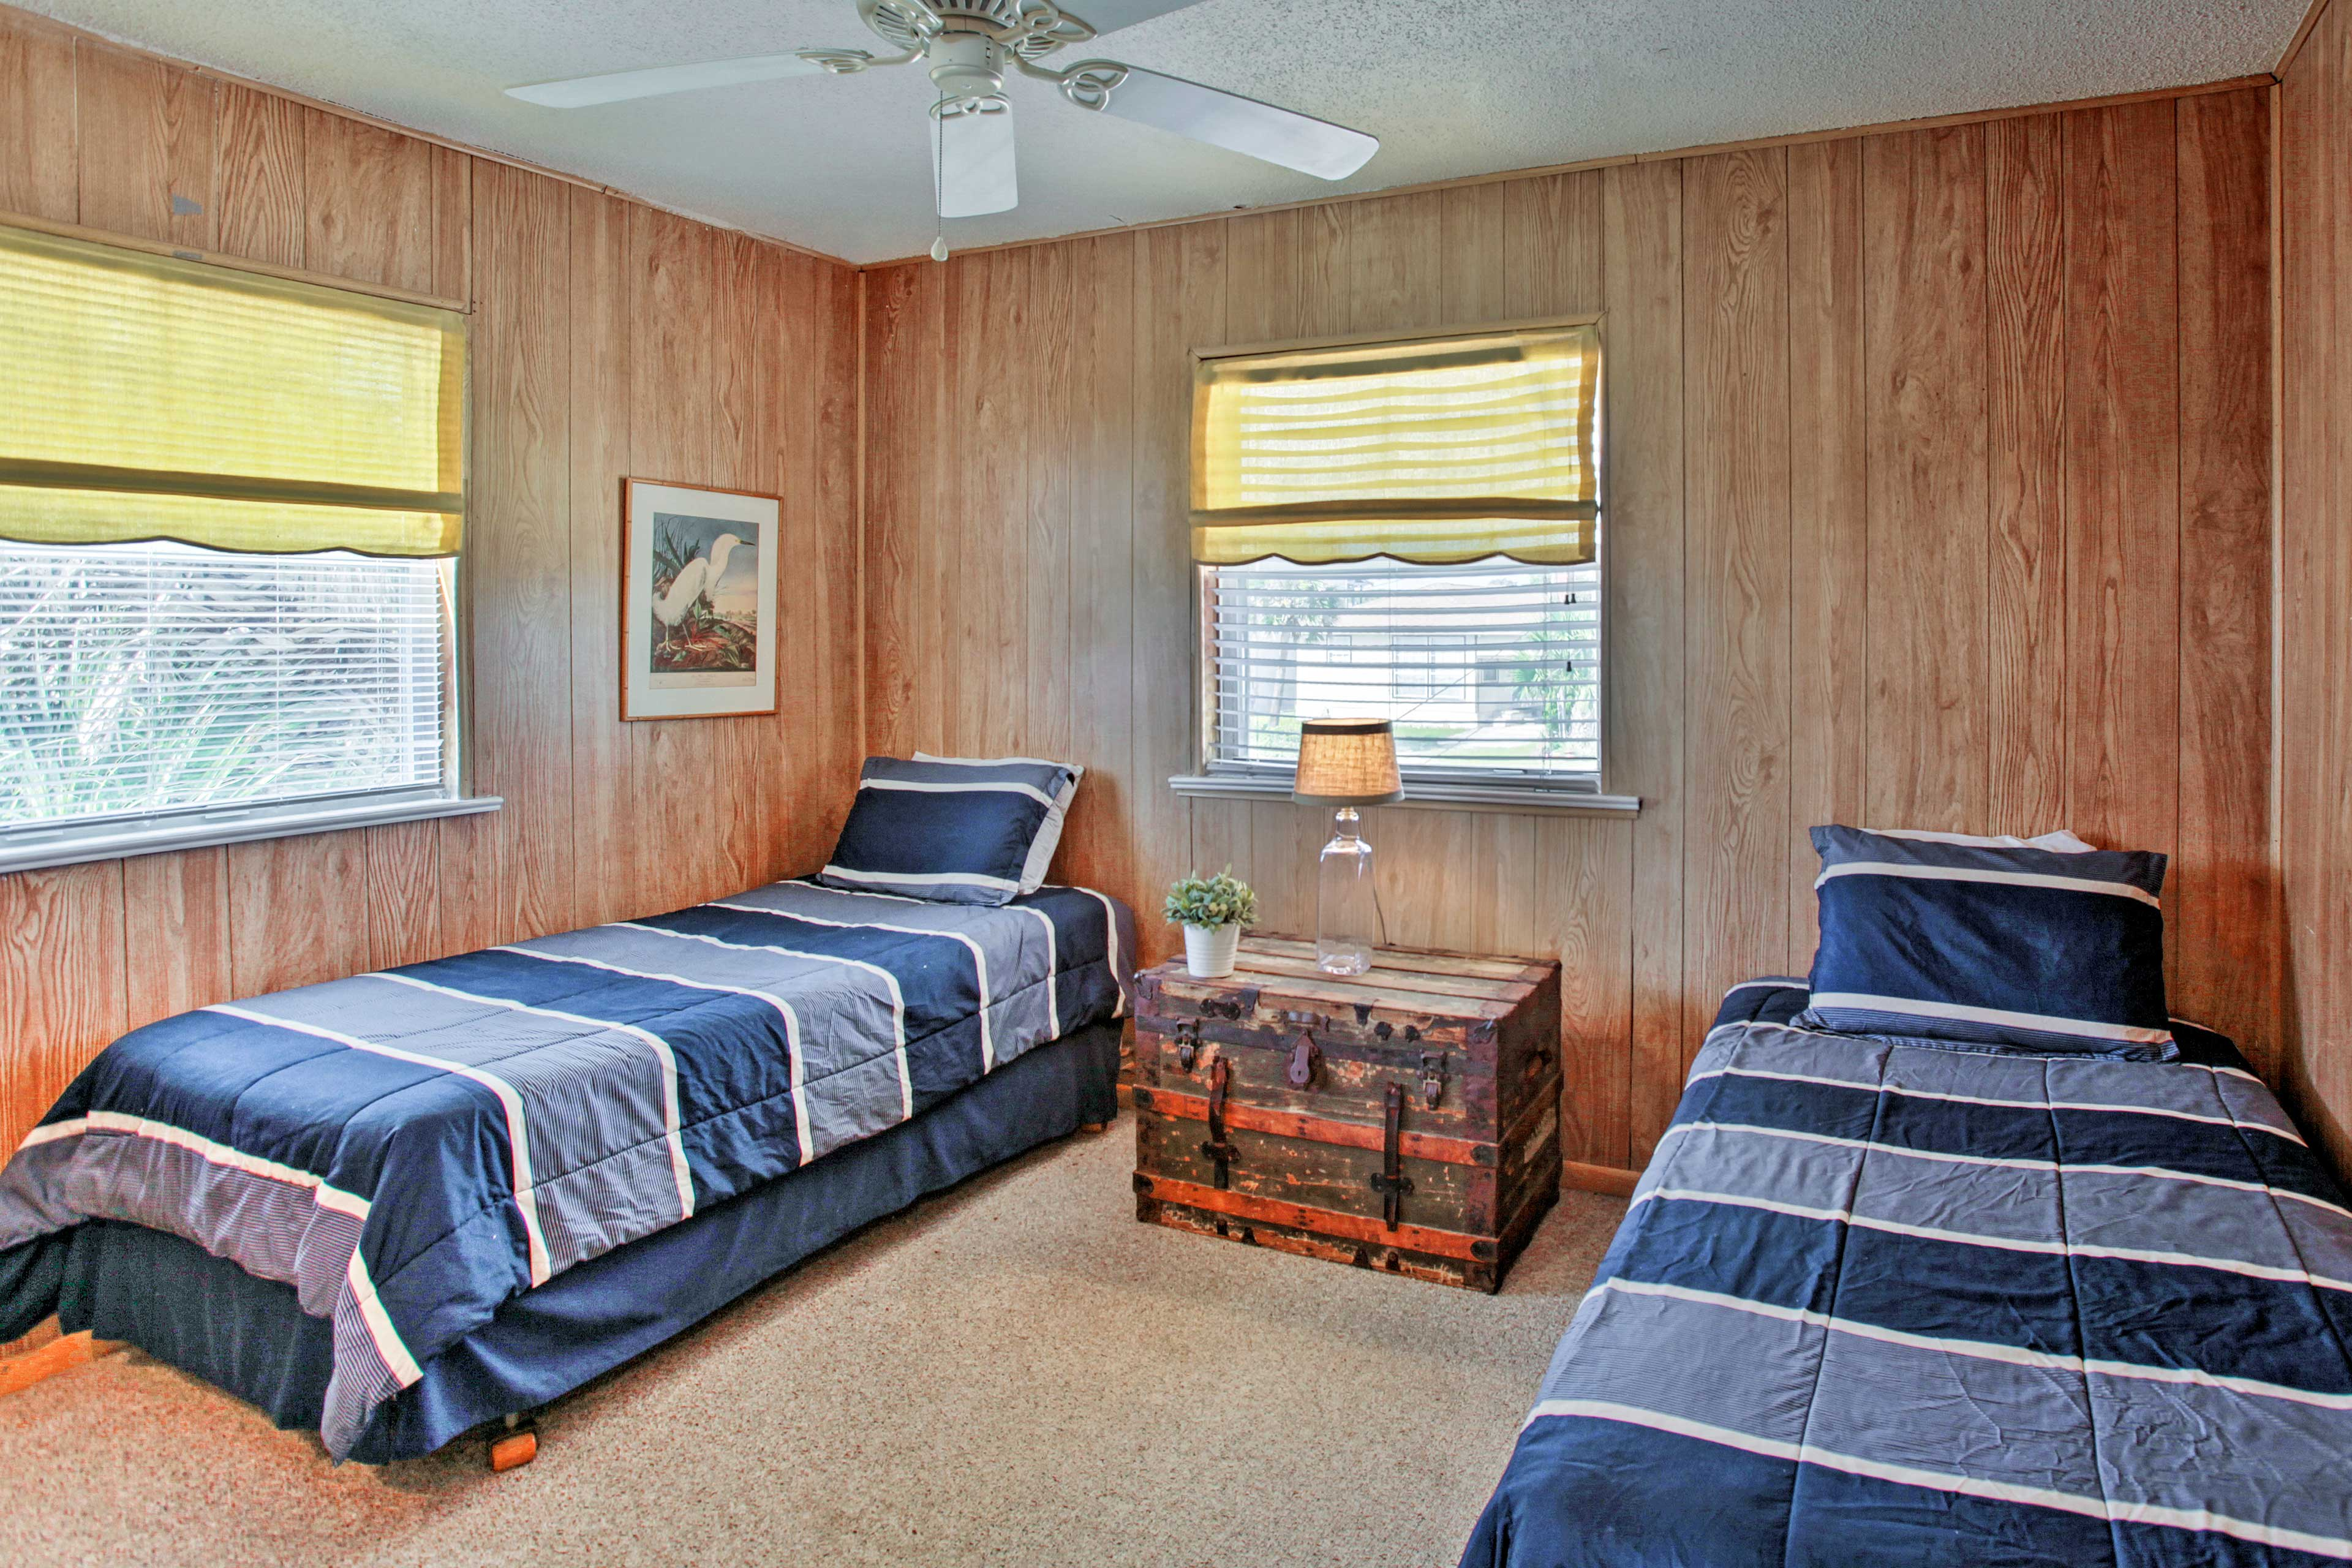 The second bedroom features 2 twin beds.